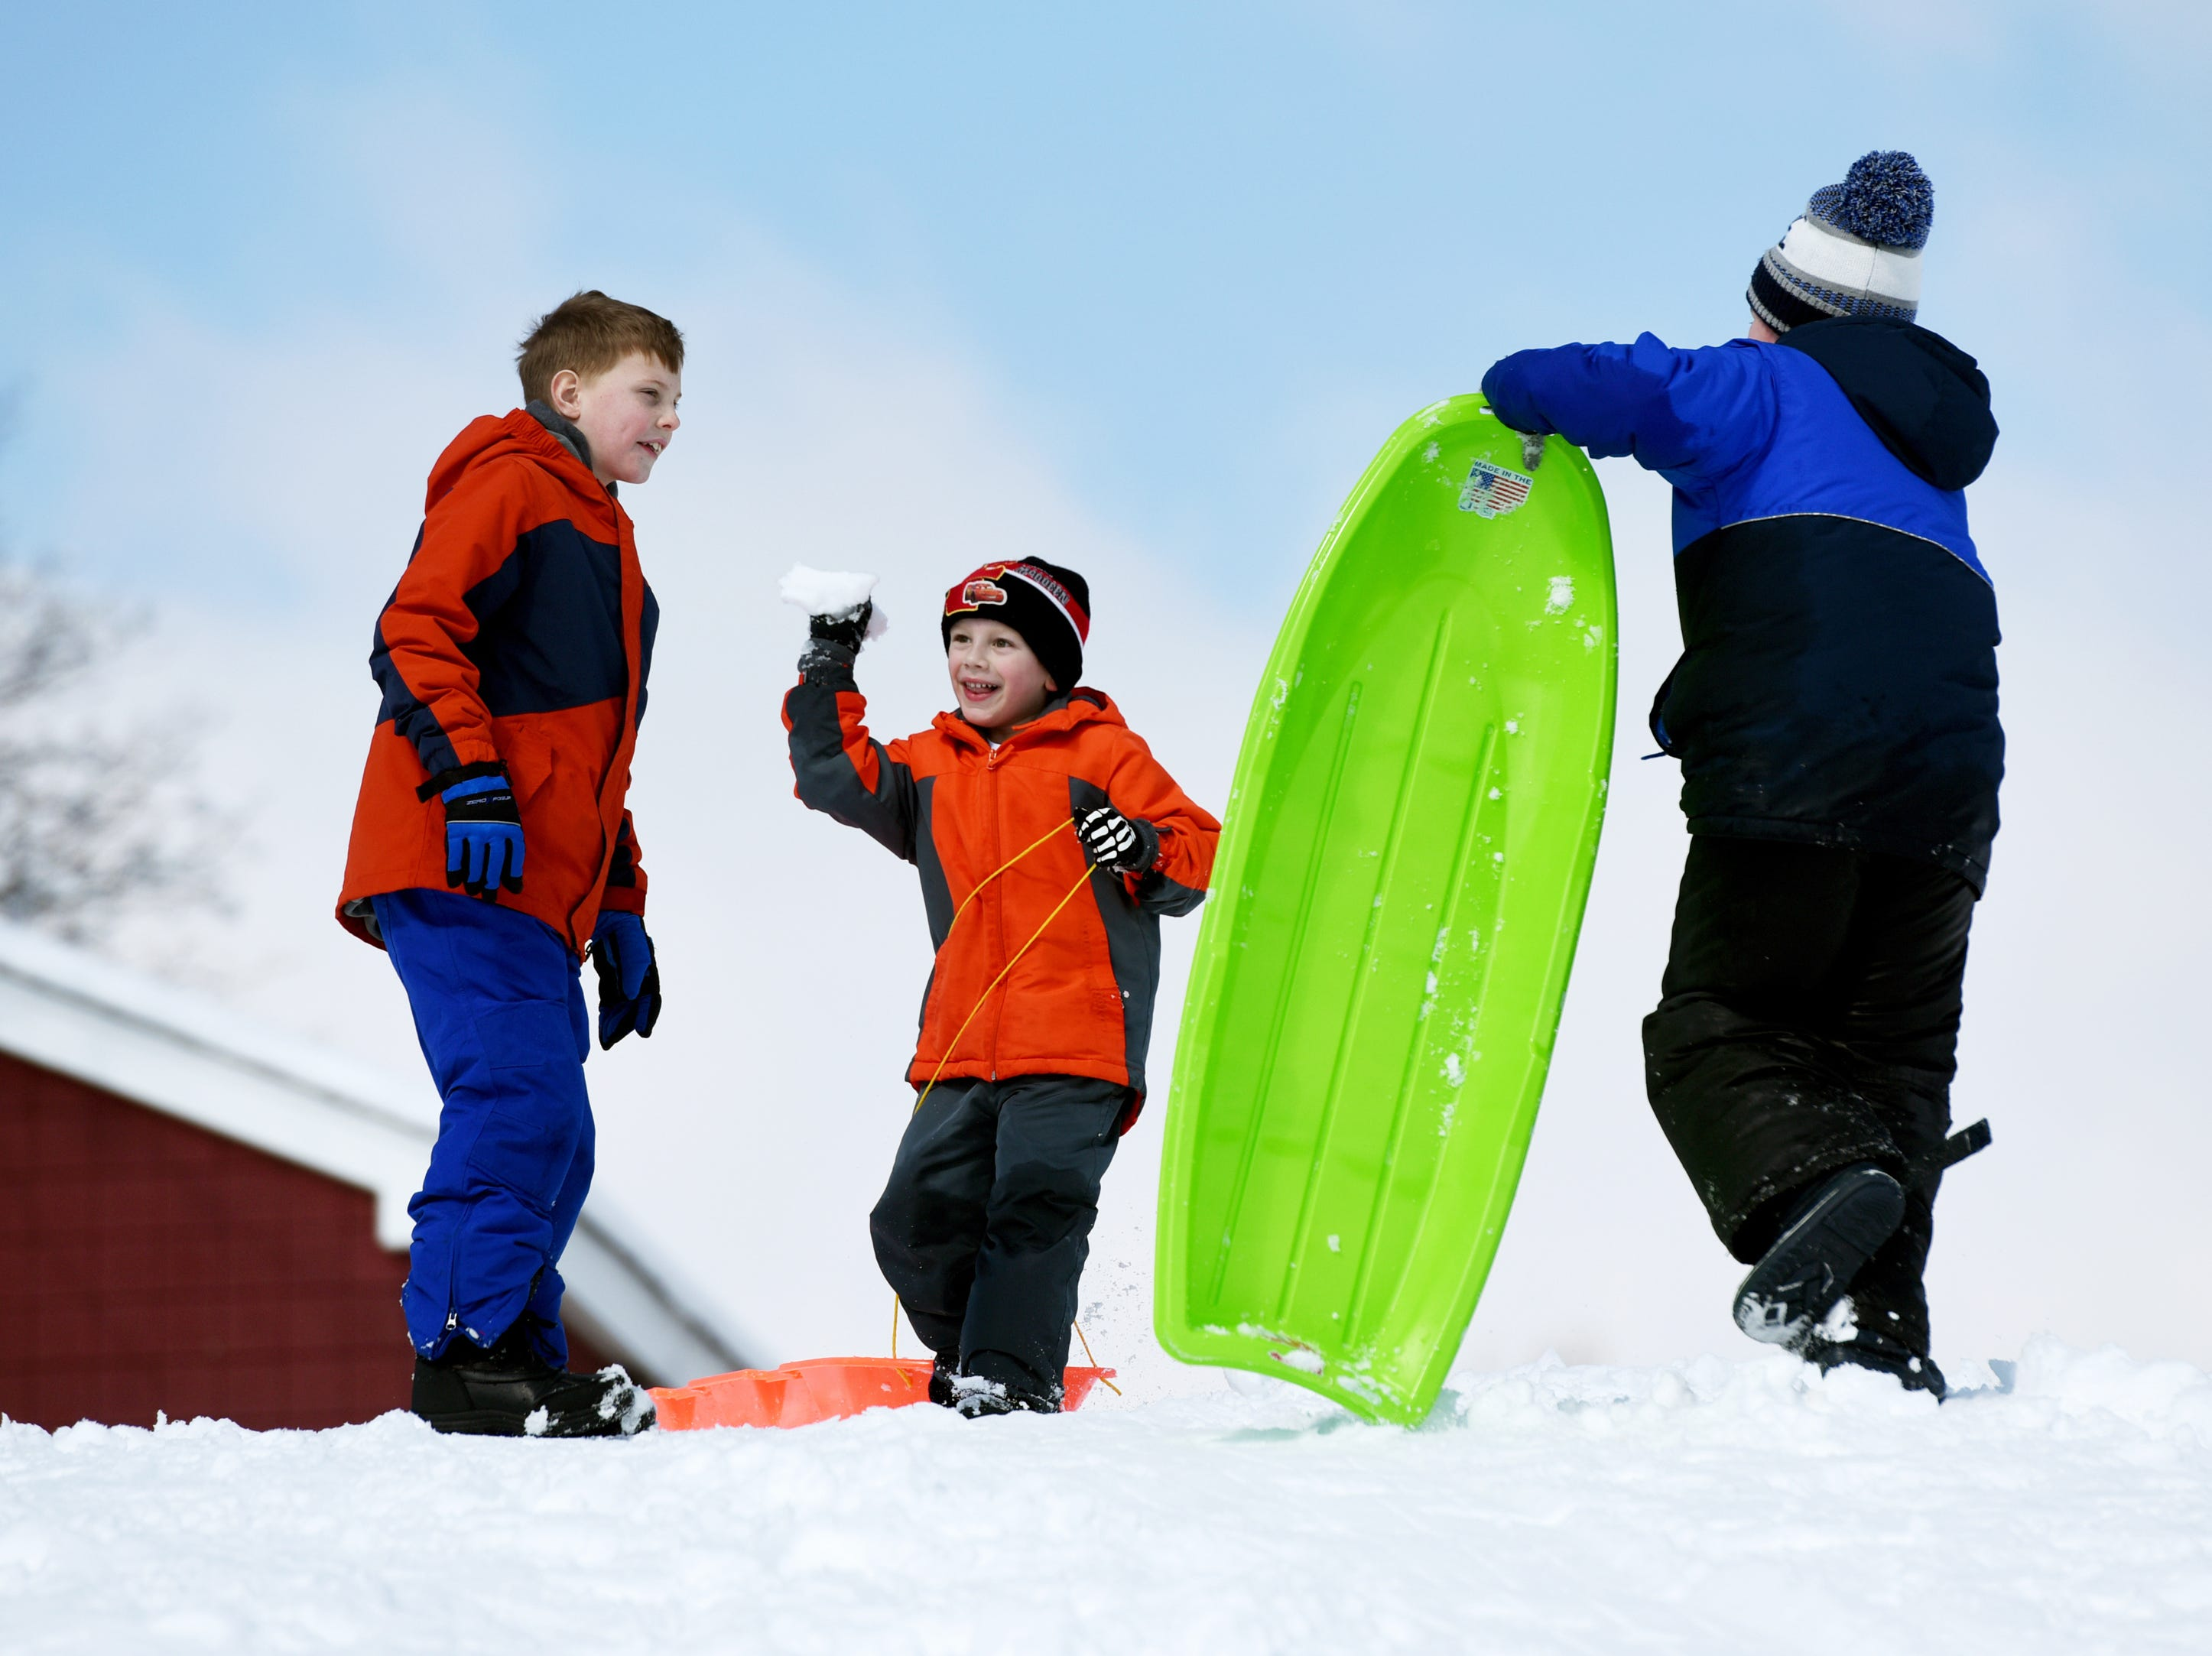 Eric Gibson, 5 throws a snowballs at his brother, Ryan Gibson, 7, during a sledding session at Mt. Prospect Park in Clifton on Monday, March 4, 2019.